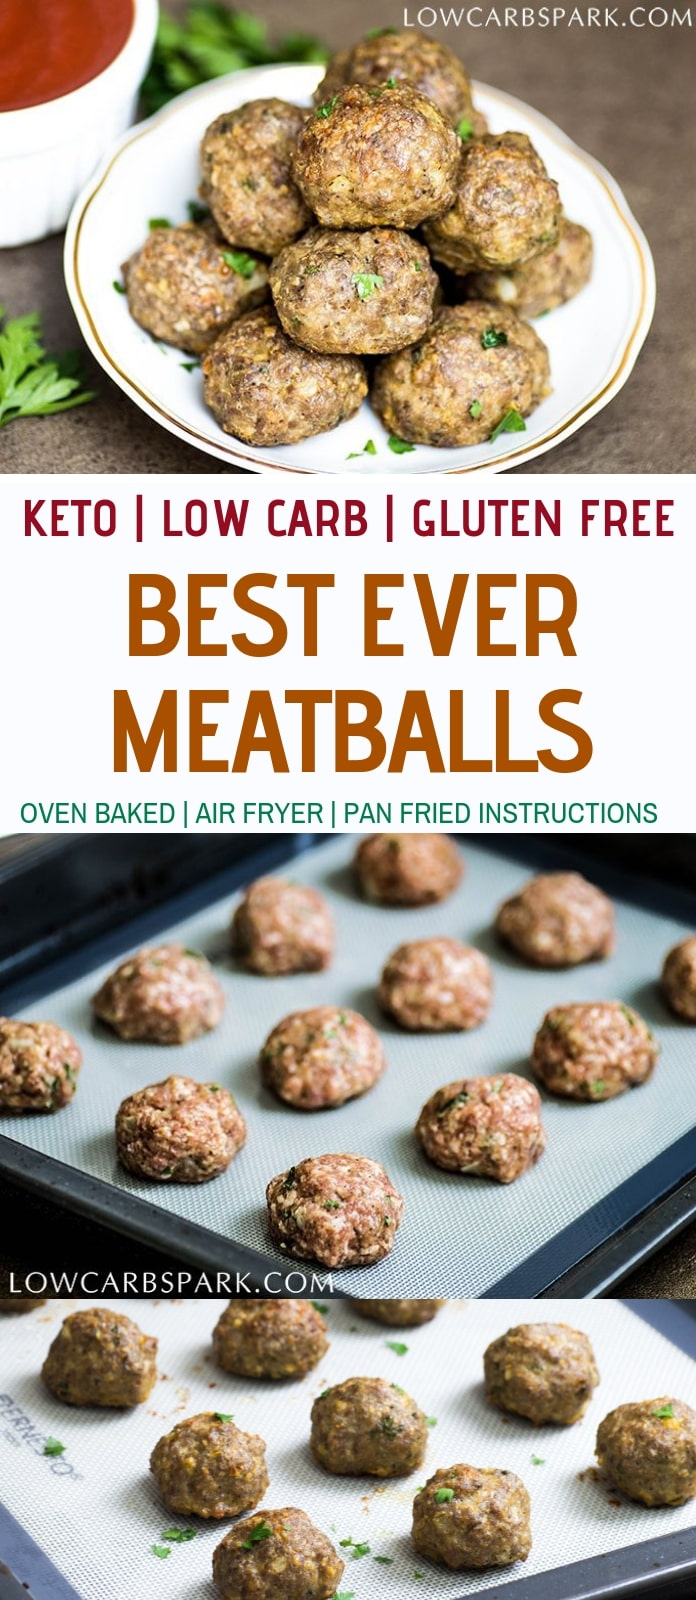 These keto meatballs are moist, tender, juicy, perfect without any breadcrumbs or flour. Learn how to make low carb meatballs that are perfect for meal prep, served as appetizers and great to take to work. I provide instructions for oven baking meatballs, pan frying or air-fryer. 0.5g carbs each meatball